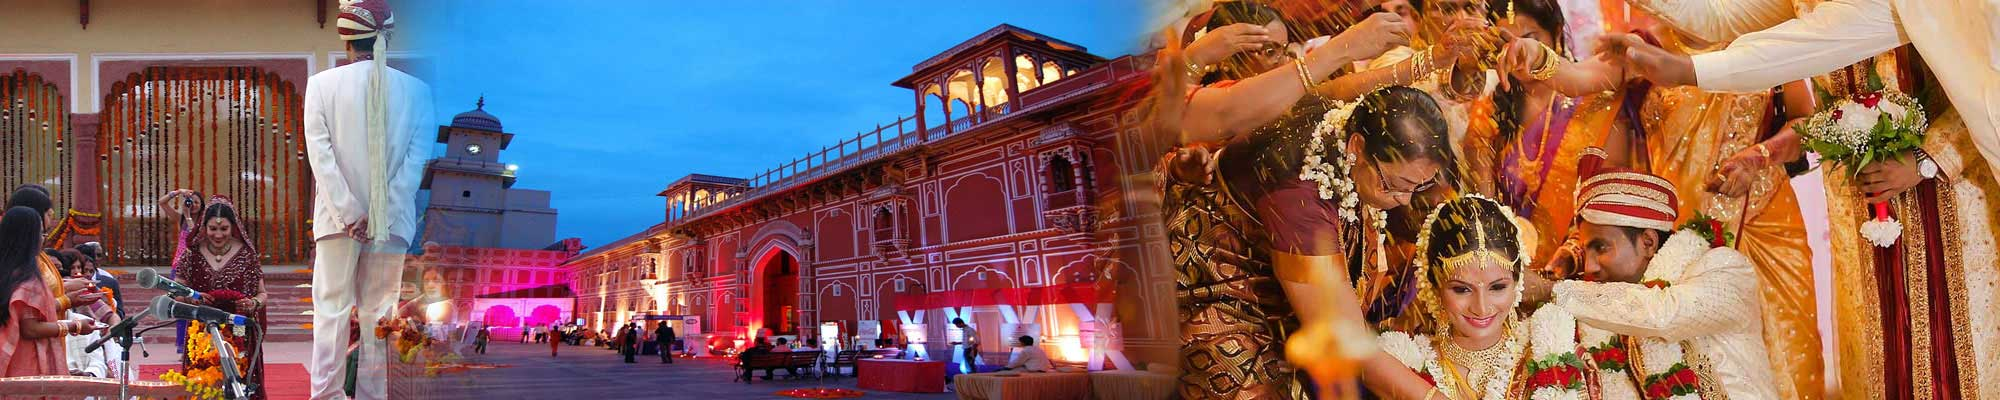 jaipur-wedding-palace.jpg